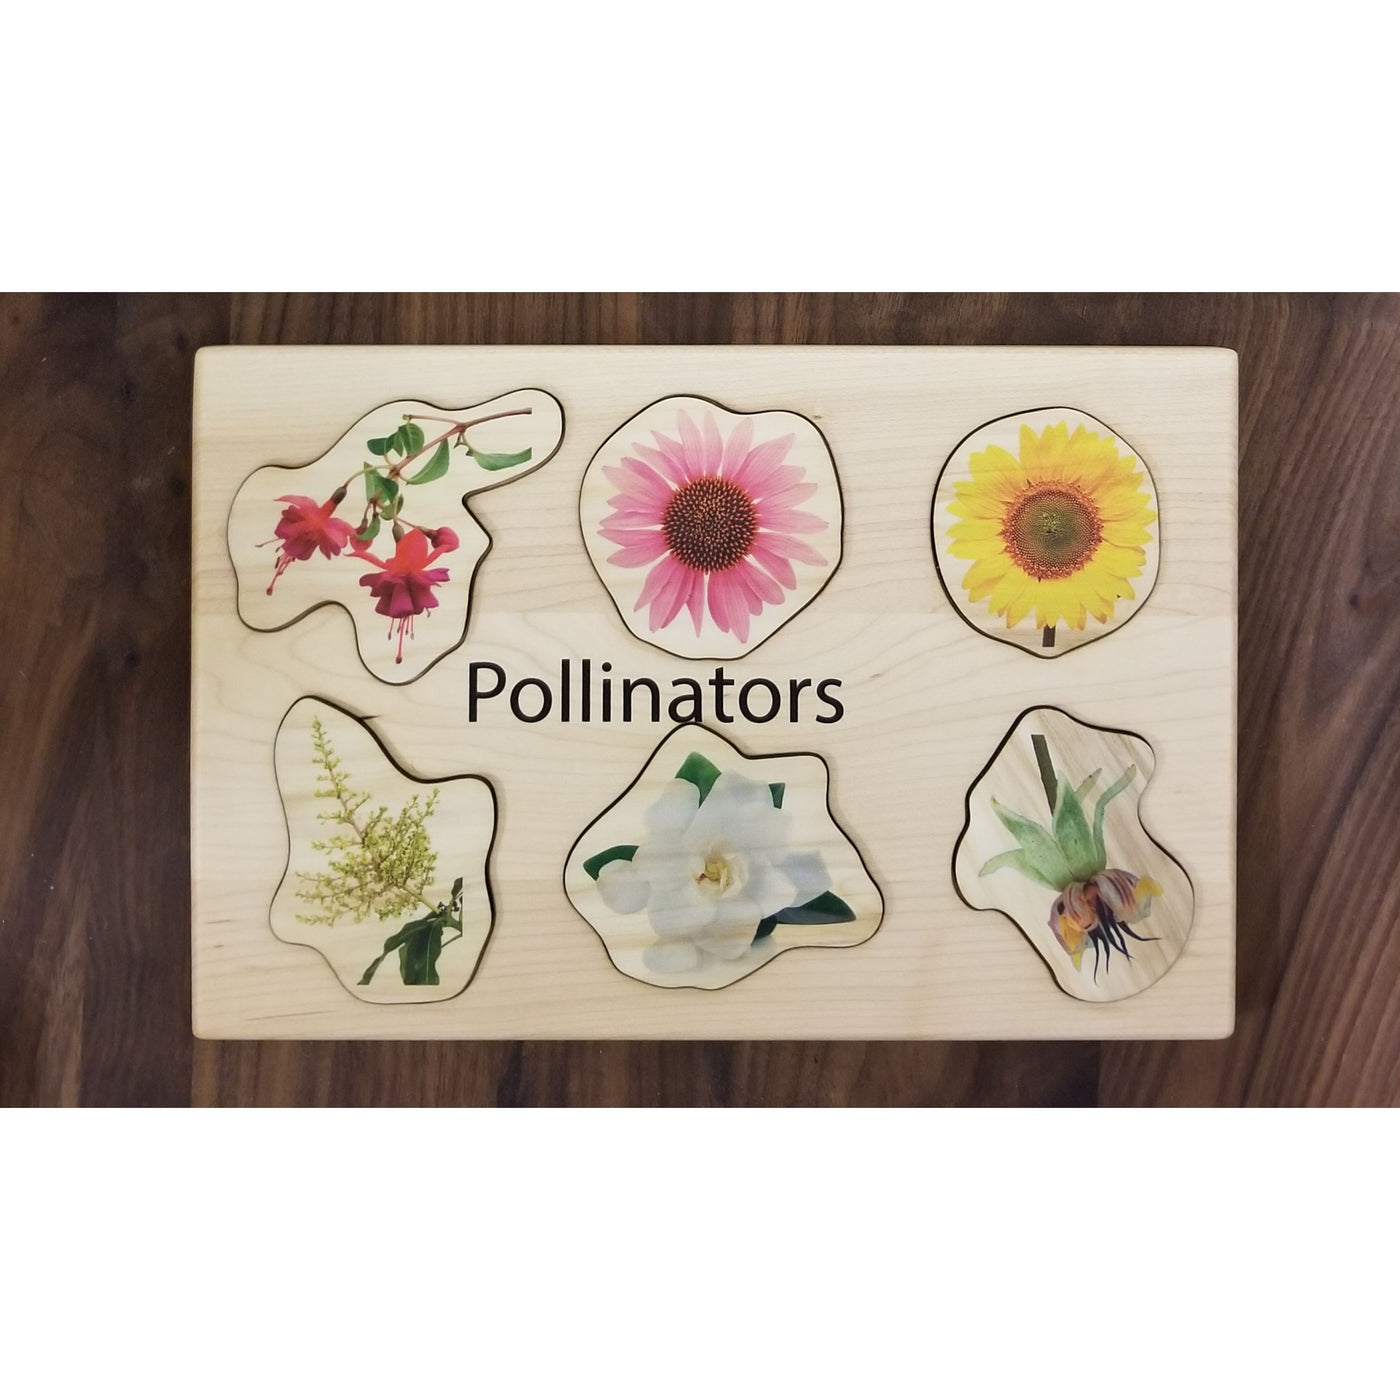 Pollinator puzzle - Wooden puzzle - different types of pollinators